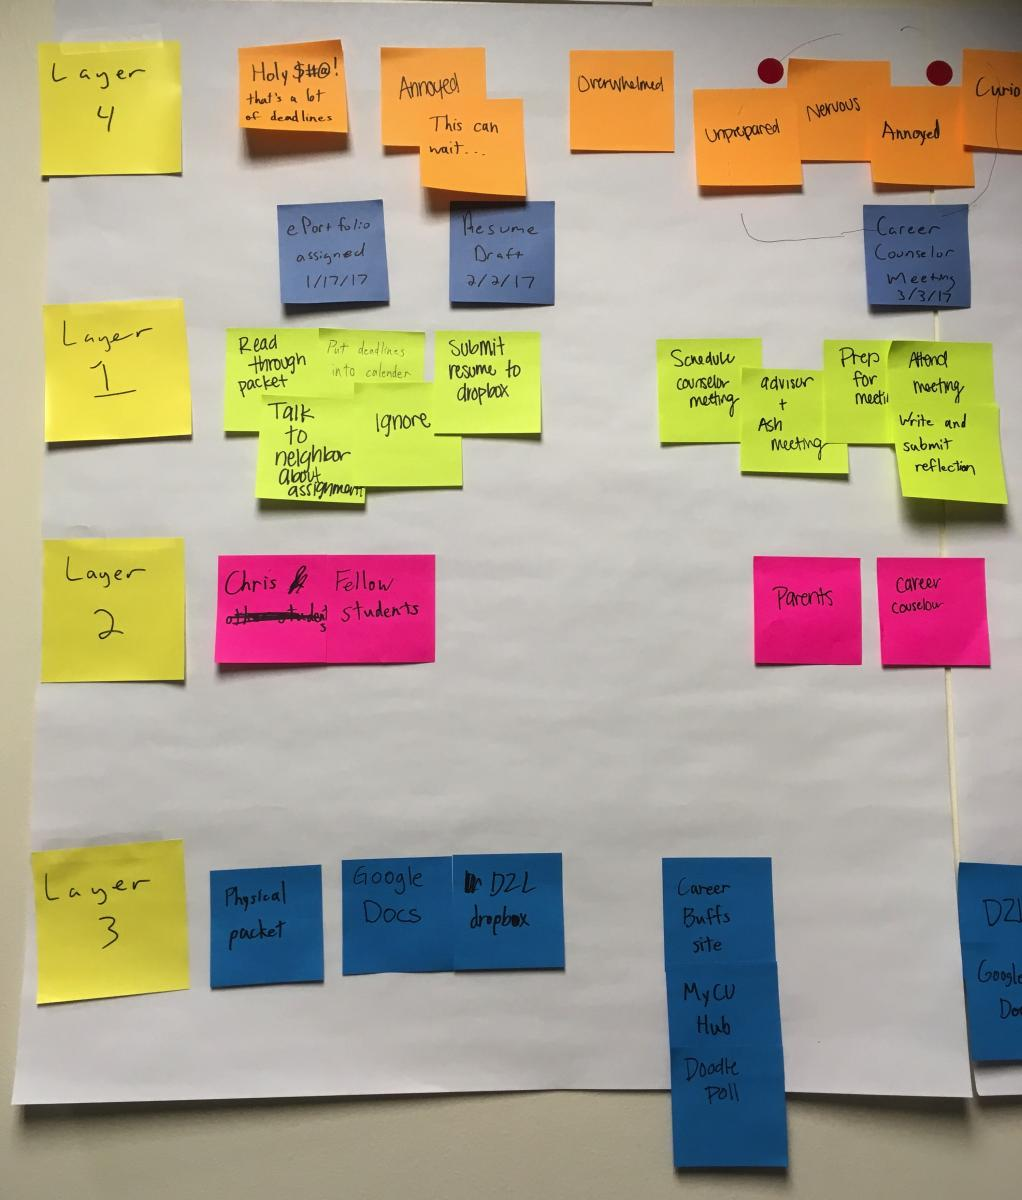 Fine-Tuning the ePortfolio Assignment with Journey Mapping